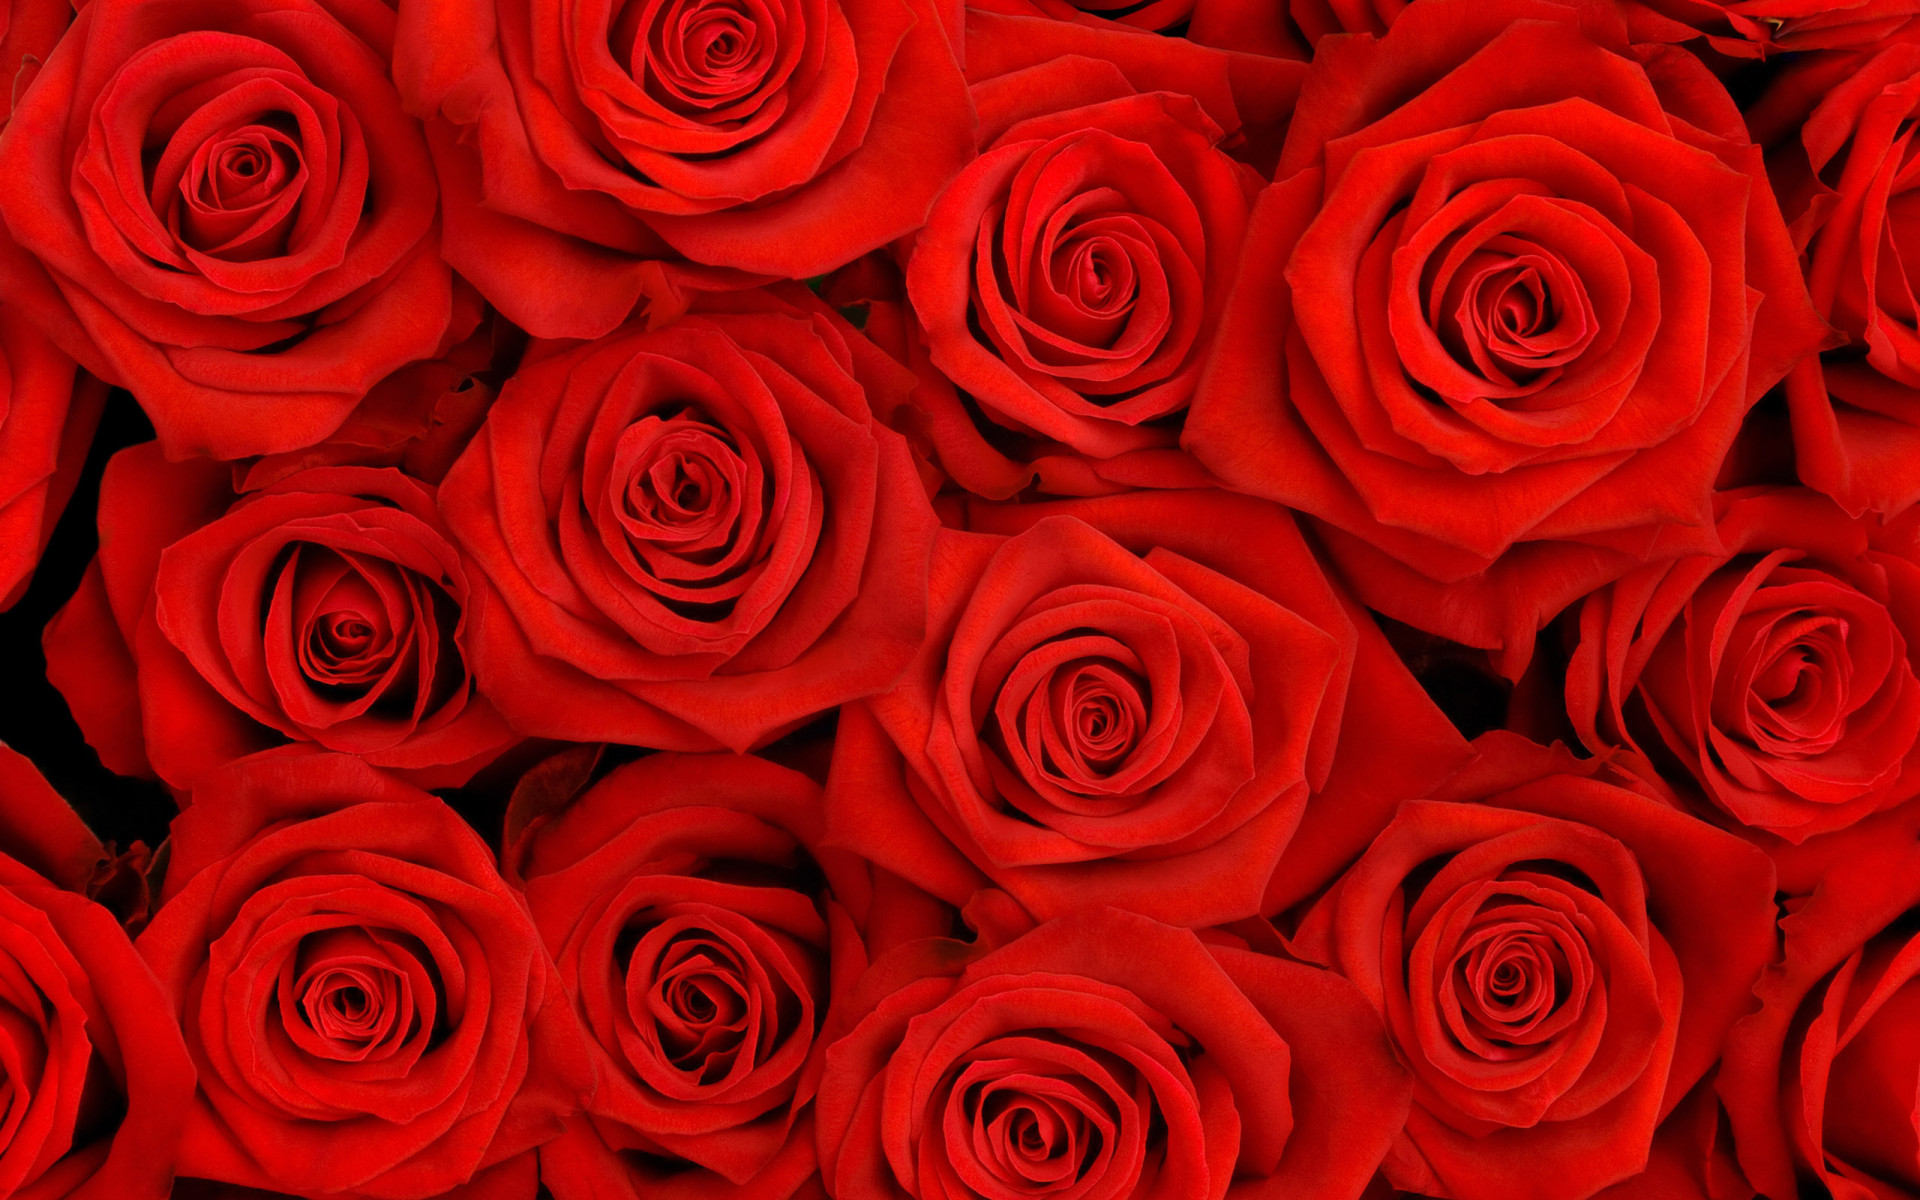 Flower Wallpapers Red Rose Desktop Wallpaper 33186